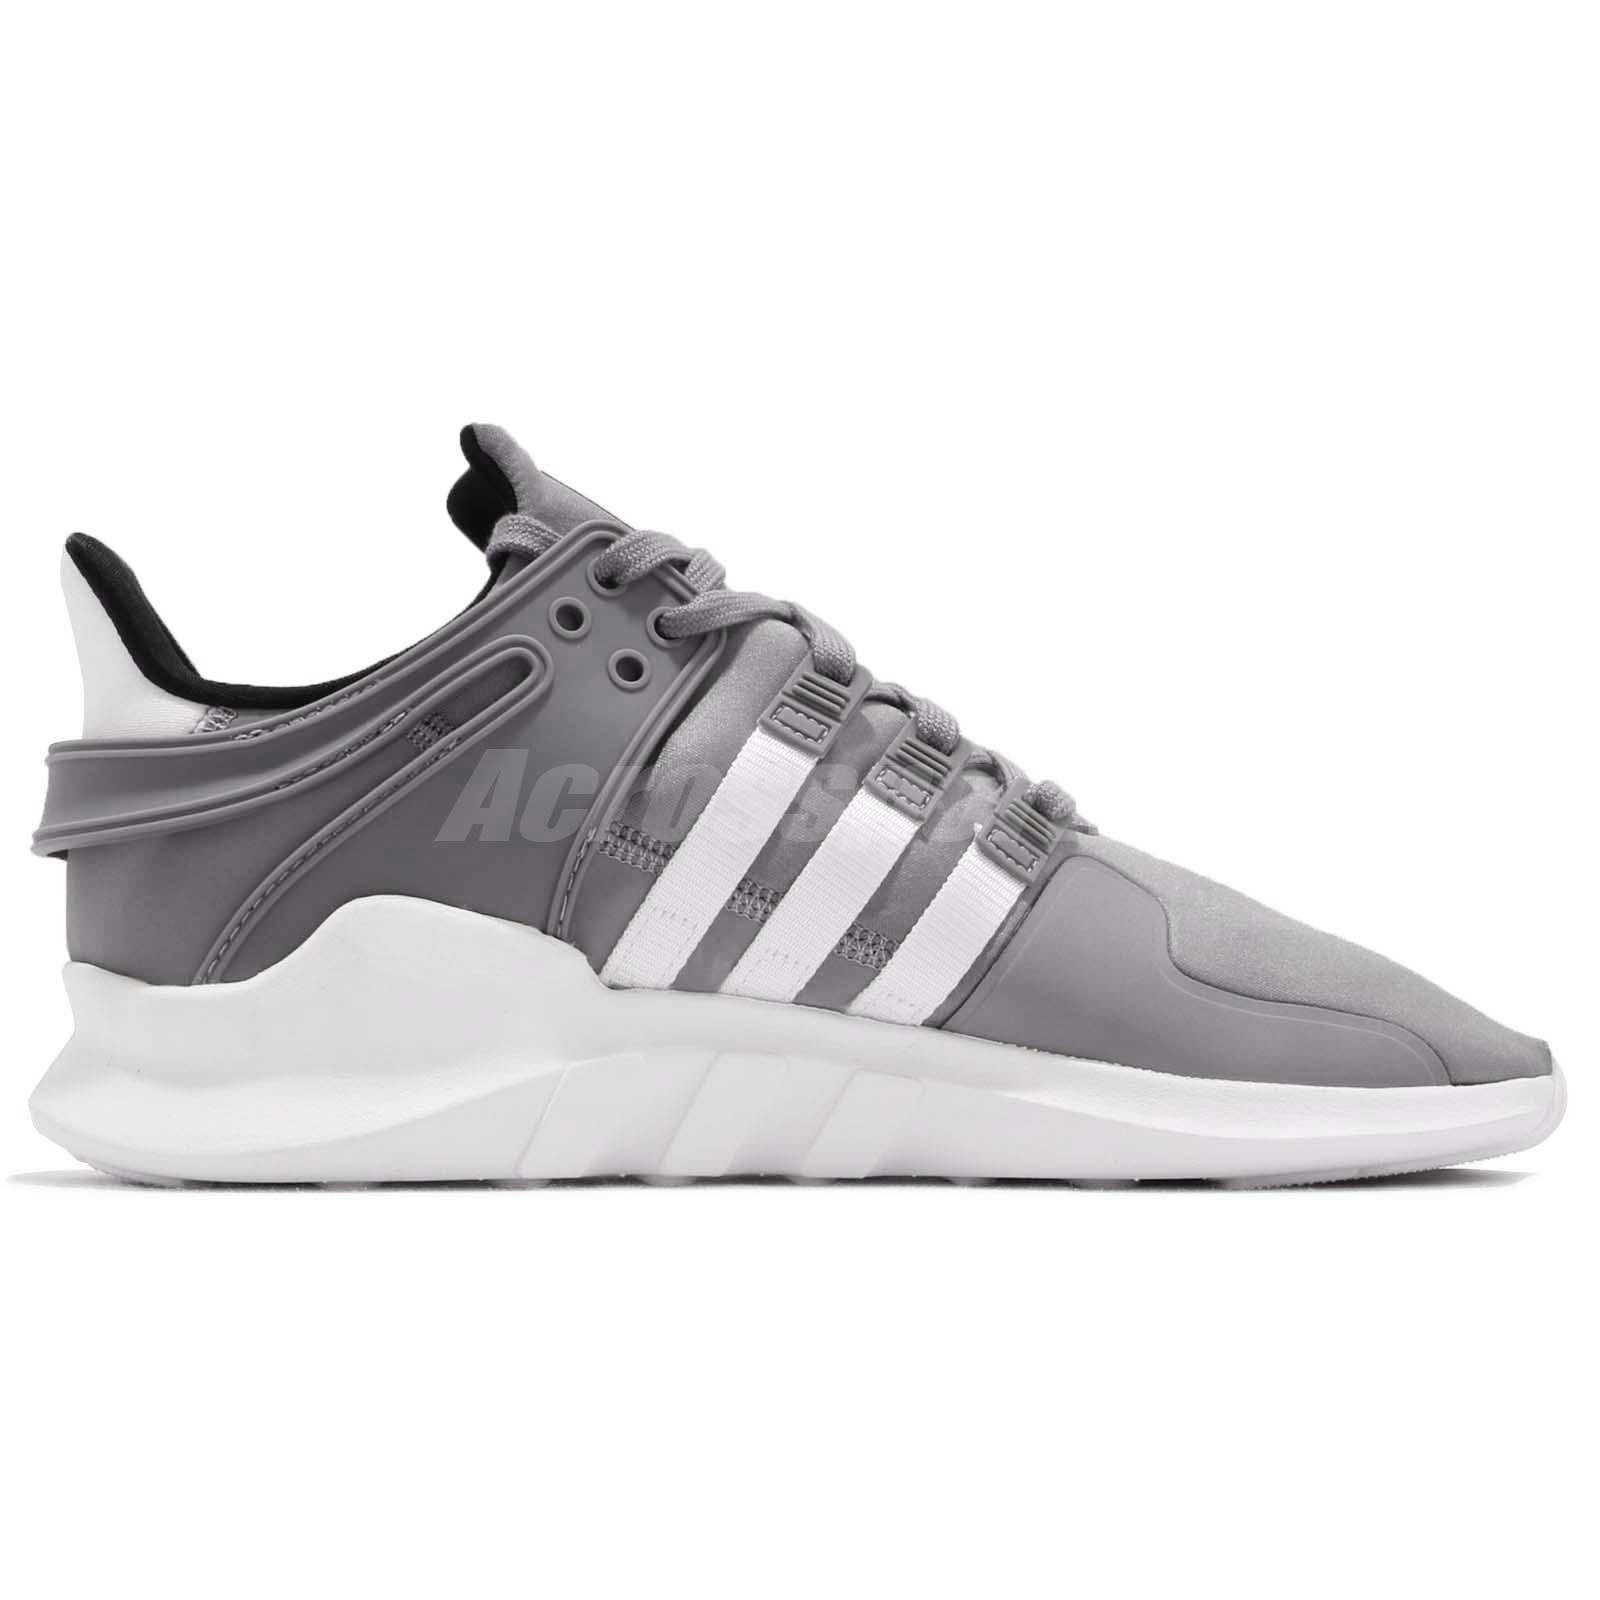 8176131f4f55 adidas Originals EQT Support ADV Grey White Men Running Shoes ...